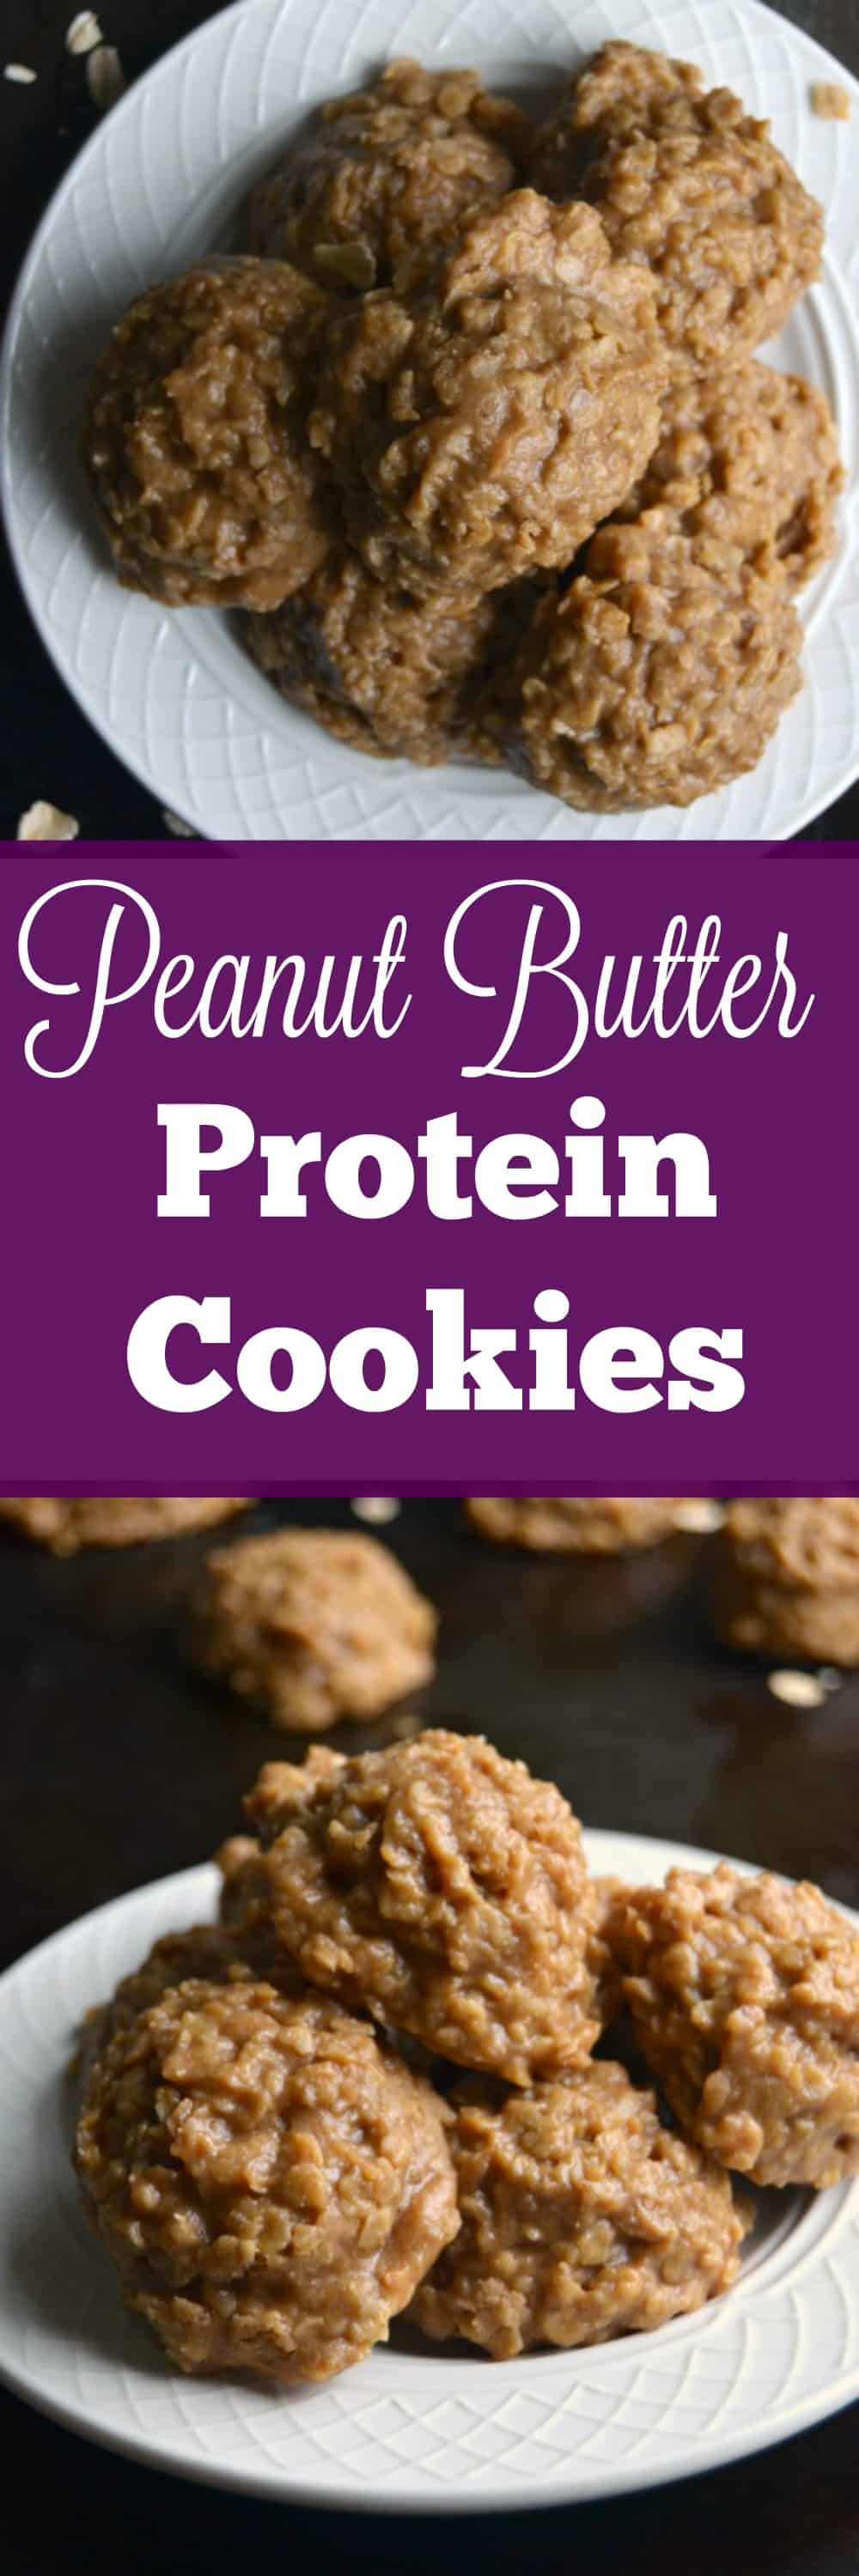 Easy and delicious these No Bake Peanut Butter Protein Cookies are perfect for a healthy snack or sweet treat!